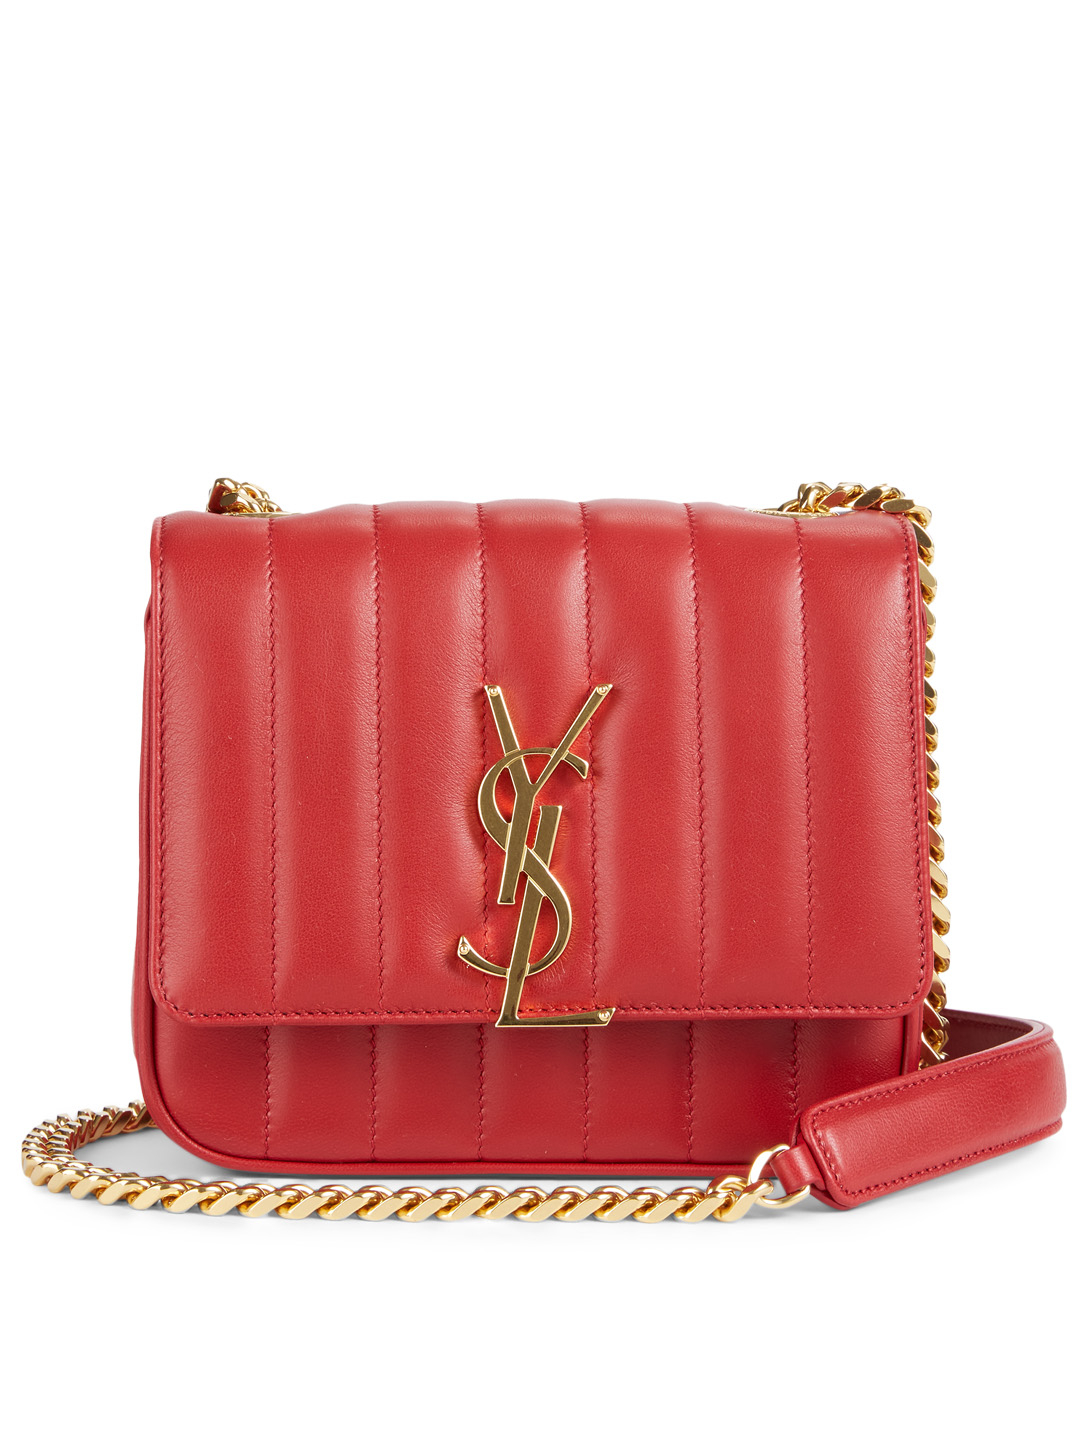 010526b4906 SAINT LAURENT Small Vicky Monogram Leather Chain Bag Women s ...